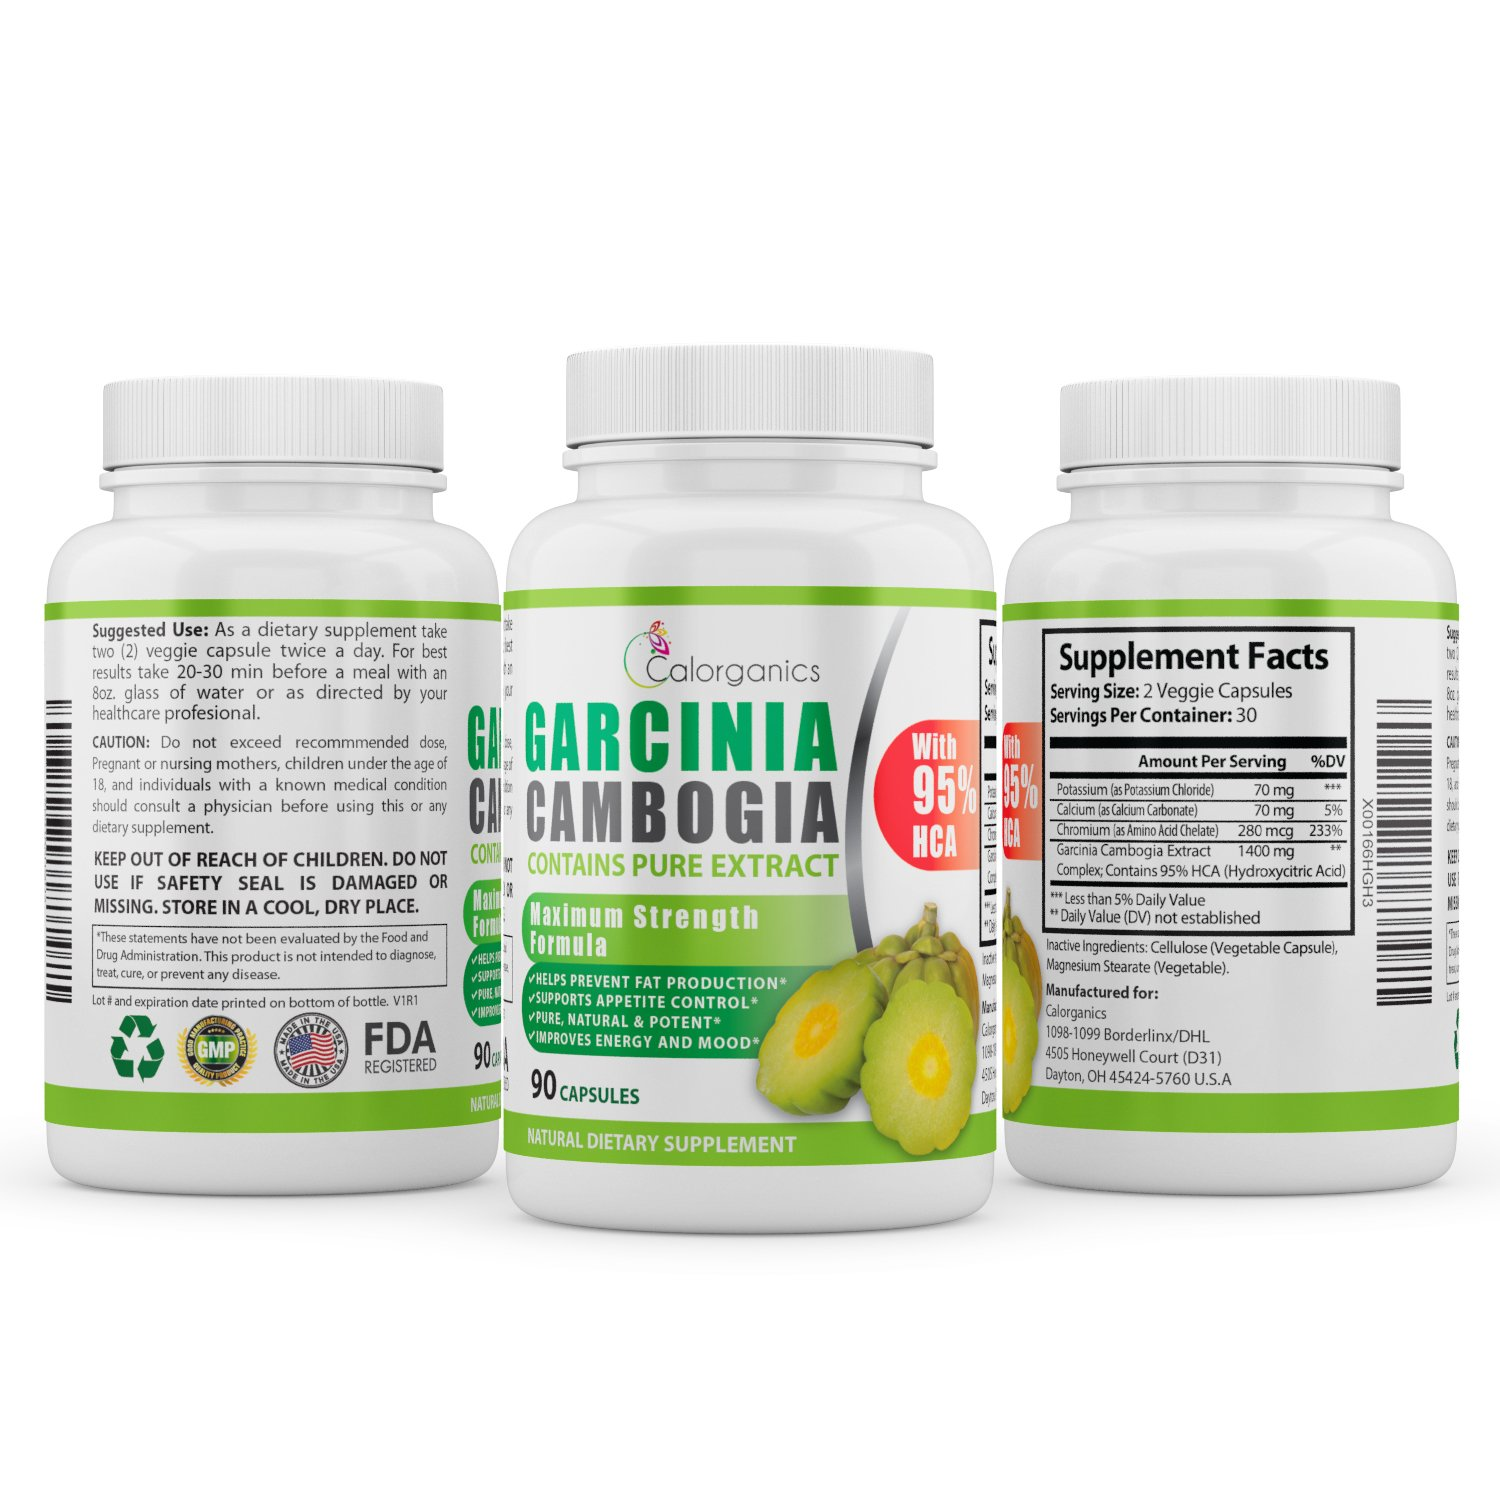 Weight loss company products